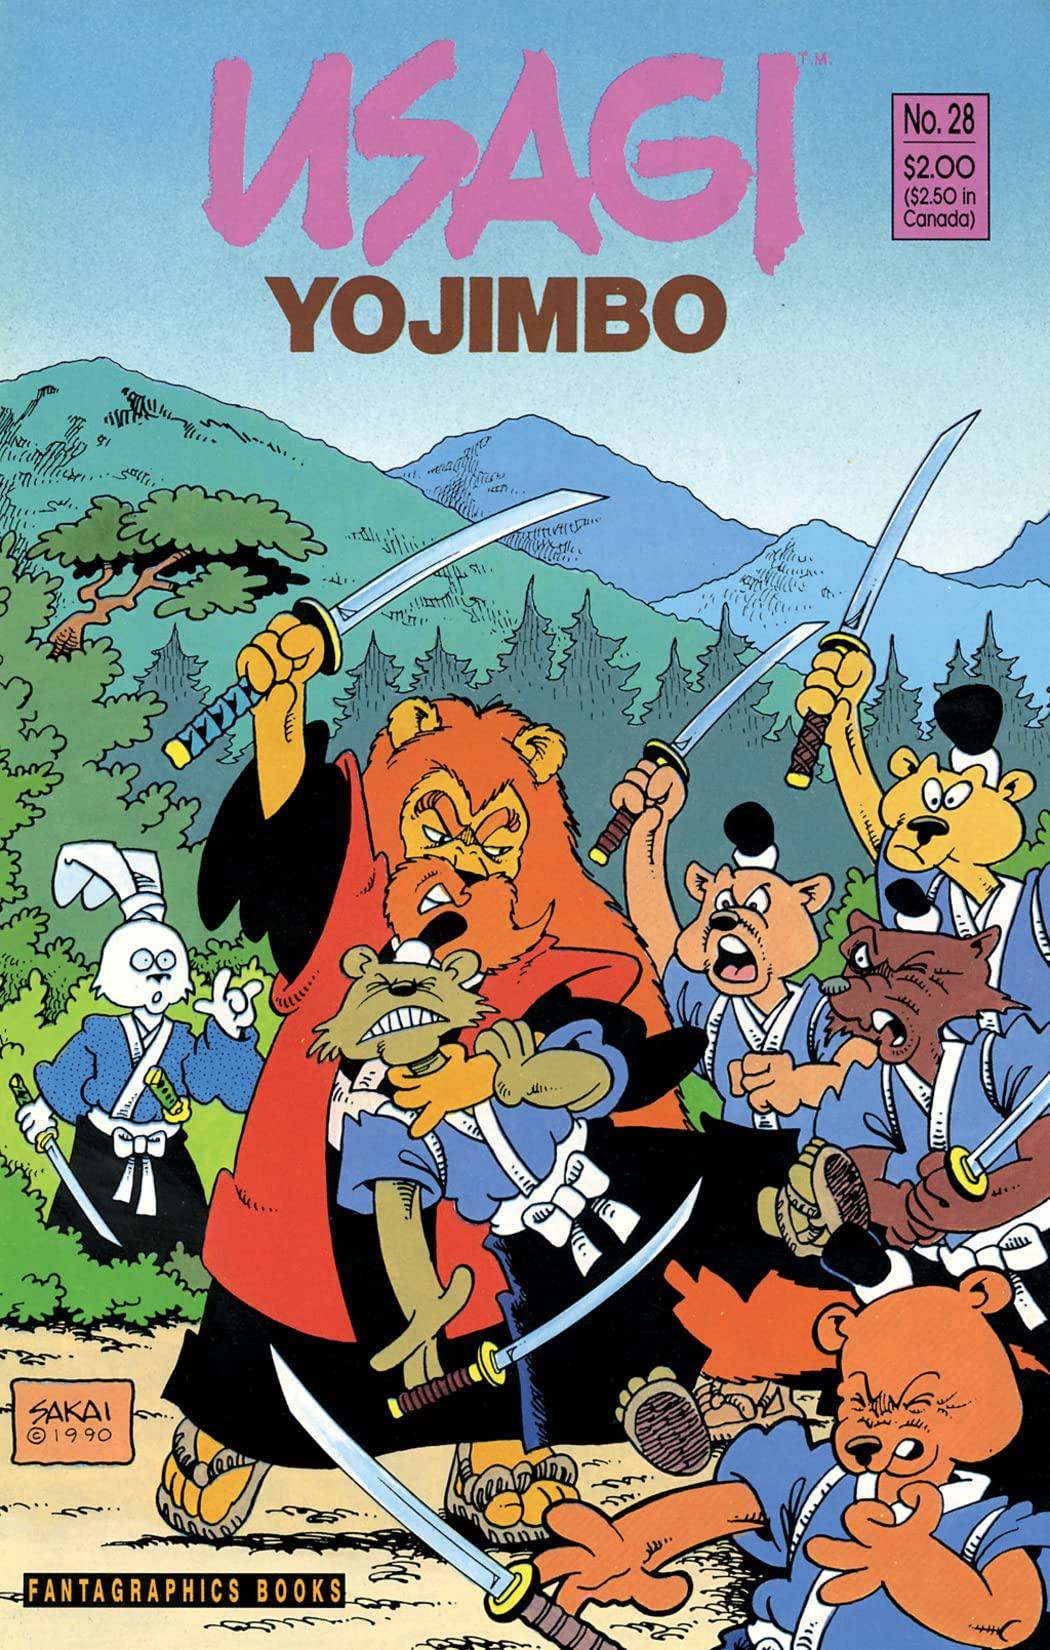 Usagi Yojimbo Vol. 1 #28